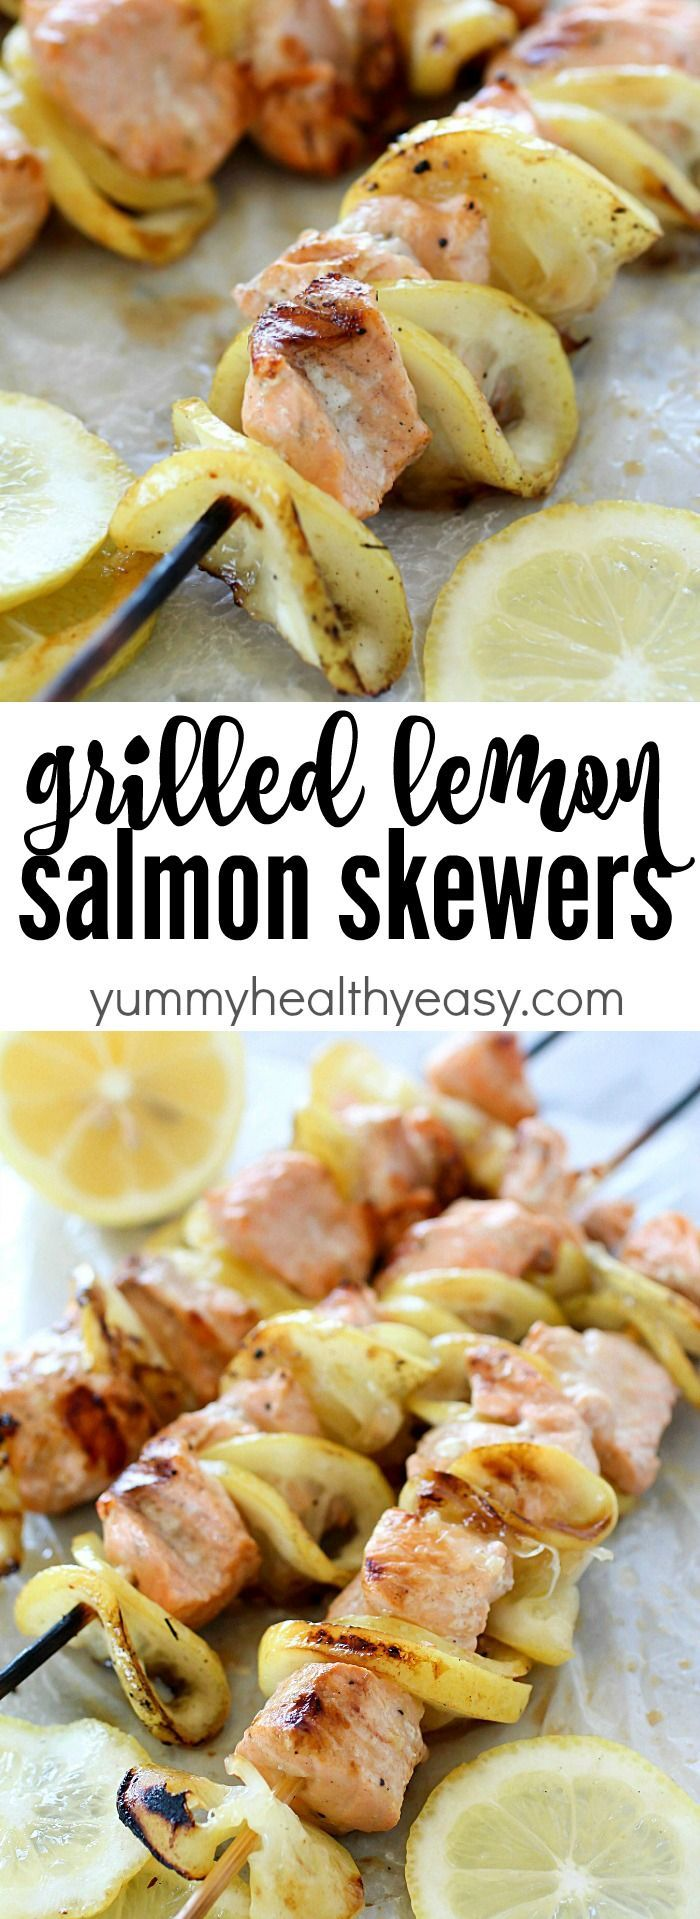 Salmon Skewers tossed in a garlic-lemon sauce and then grilled. So ...